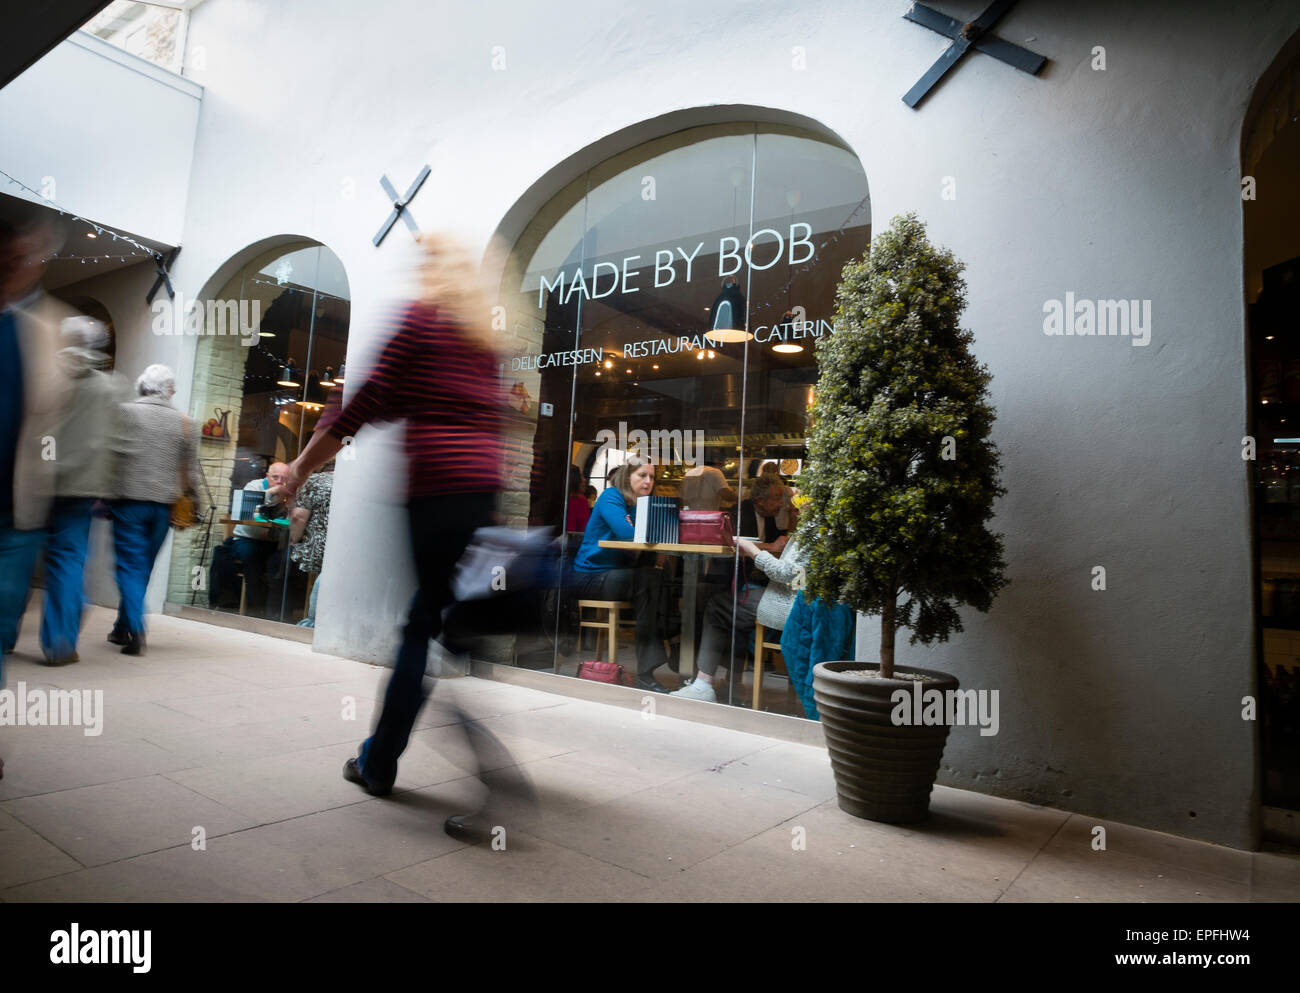 Exterior: people walking past  Made by Bob cafe restaurant and delicatessen, Cirencester, Gloucestershire, England - Stock Image